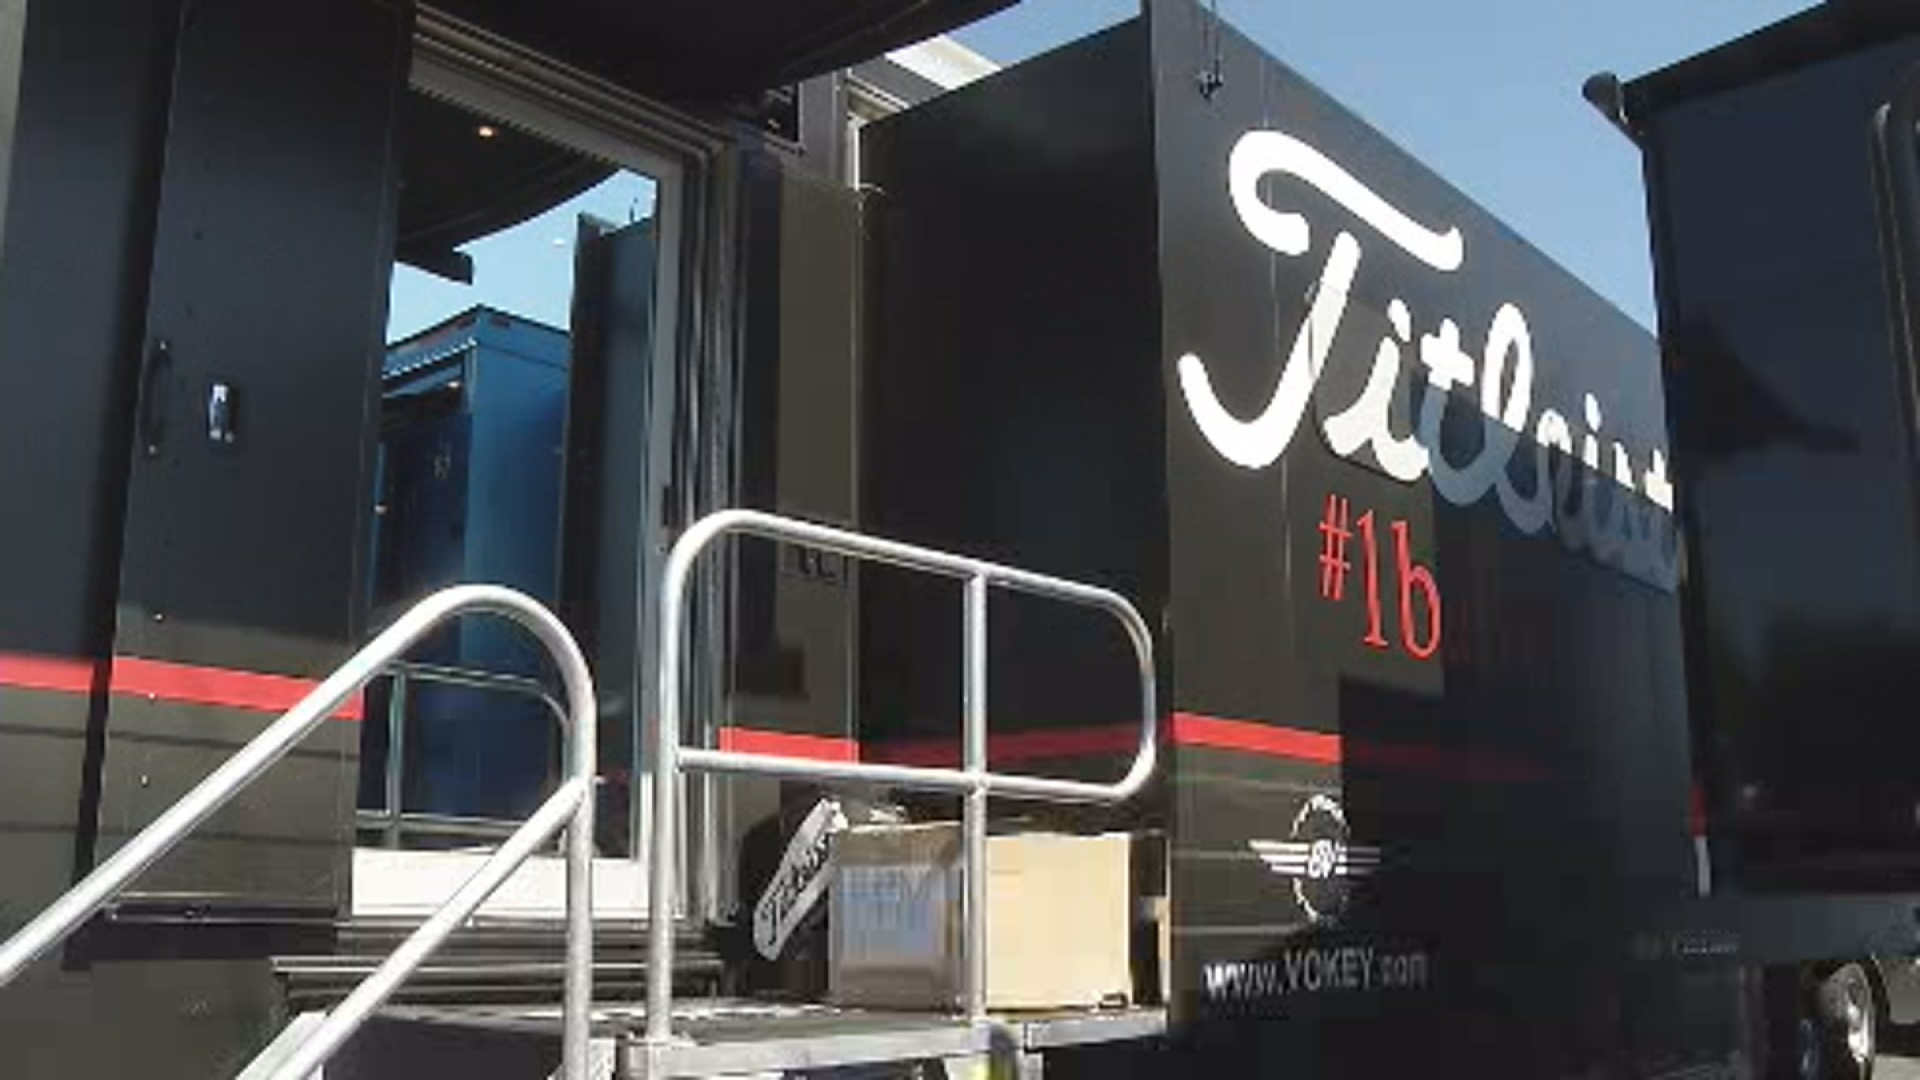 Titleist tour van serves as a portable proshop for players to get their clubs adjusted before the tournament._134879